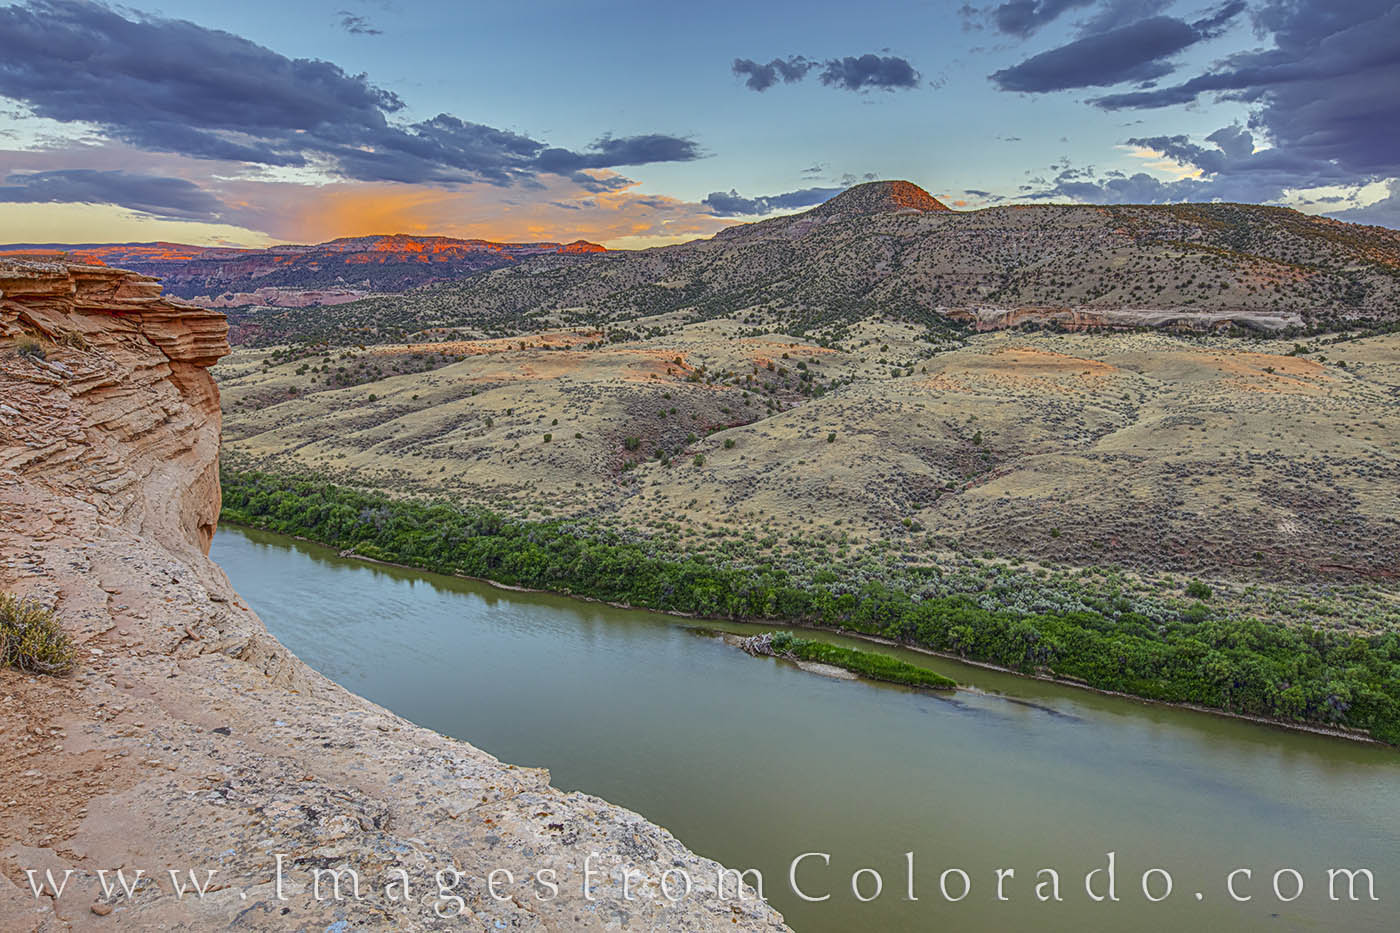 From a small promentory along the Kokopelli Trail, this view of the Colorado River looks east at sunset. In the distance is Black...